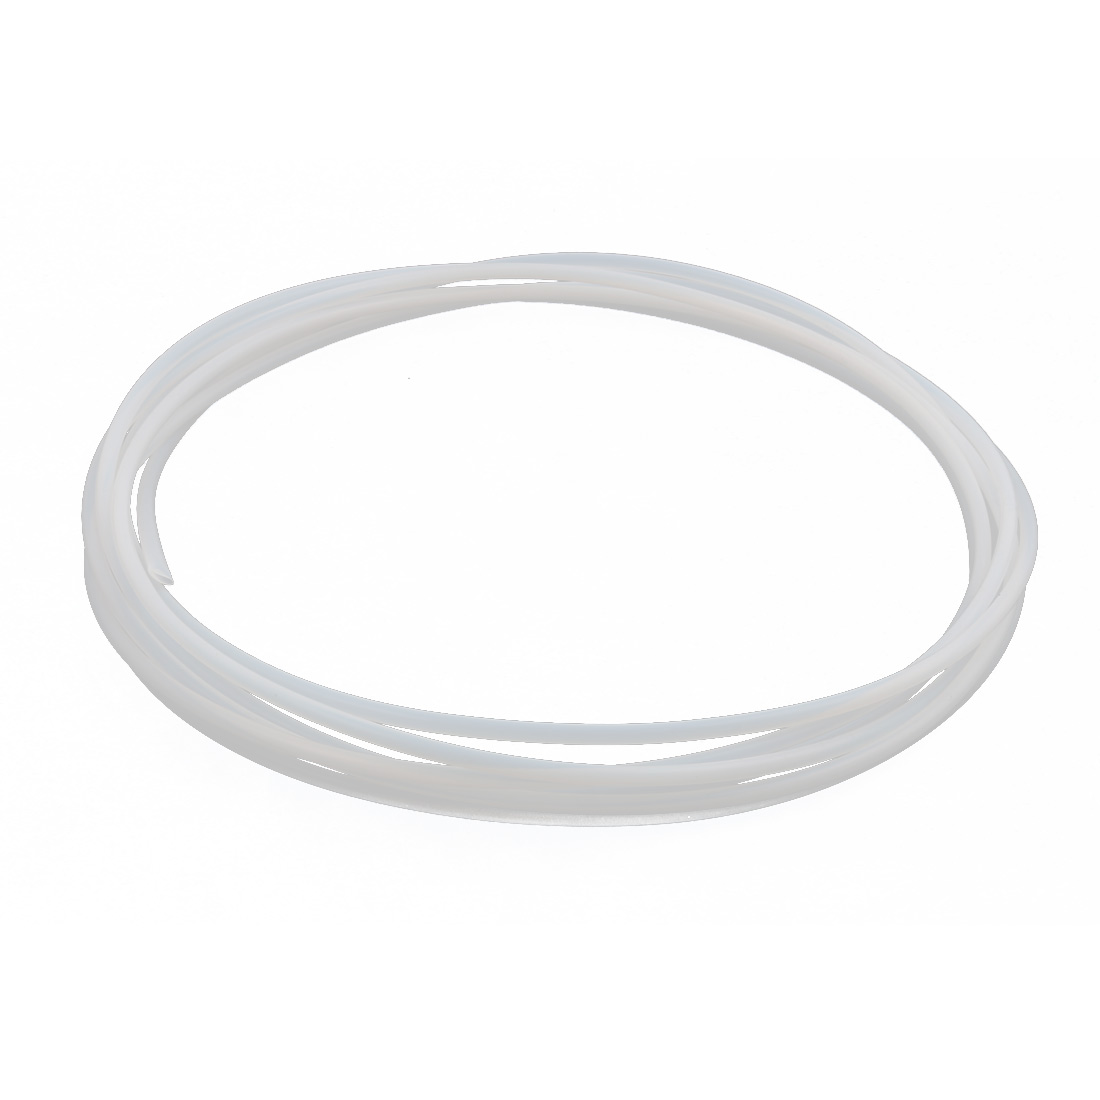 4.22mmx4.72mm PTFE Resistant High Temperature Transparent Tubing 5Meters 16.4Ft